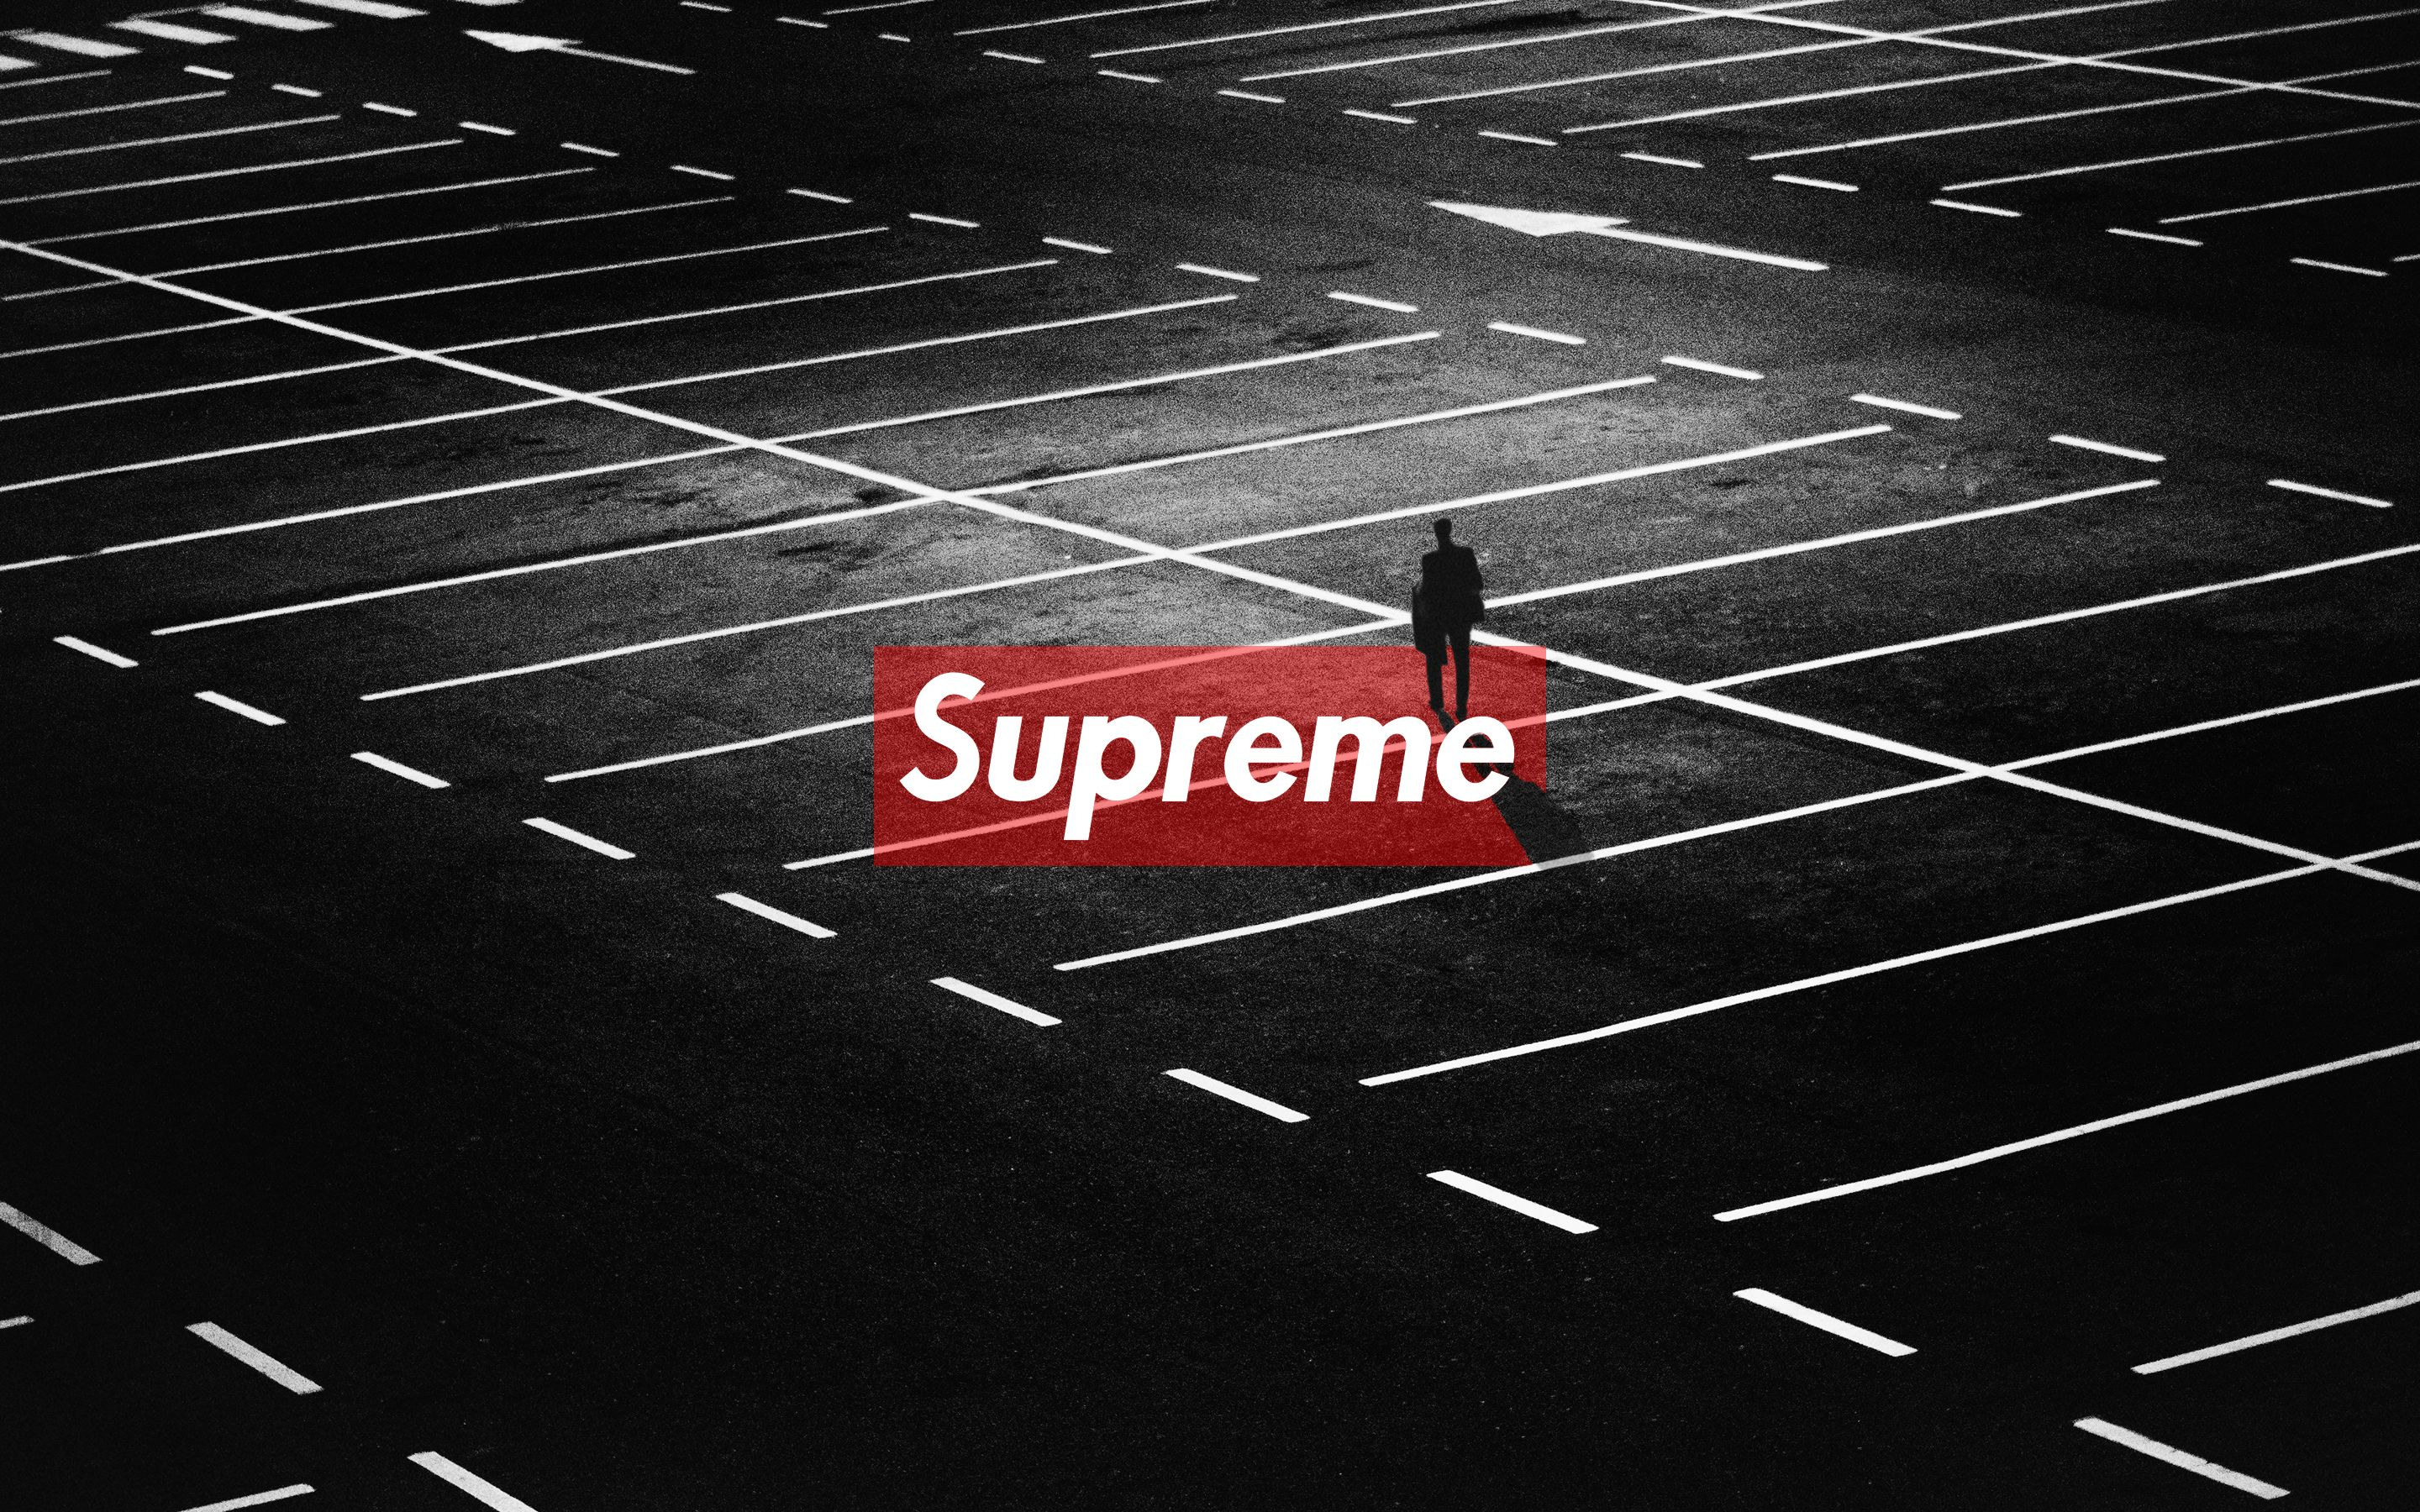 Supreme Wallpapers Supreme Wallpaper Supreme Iphone Wallpaper Hype Wallpaper